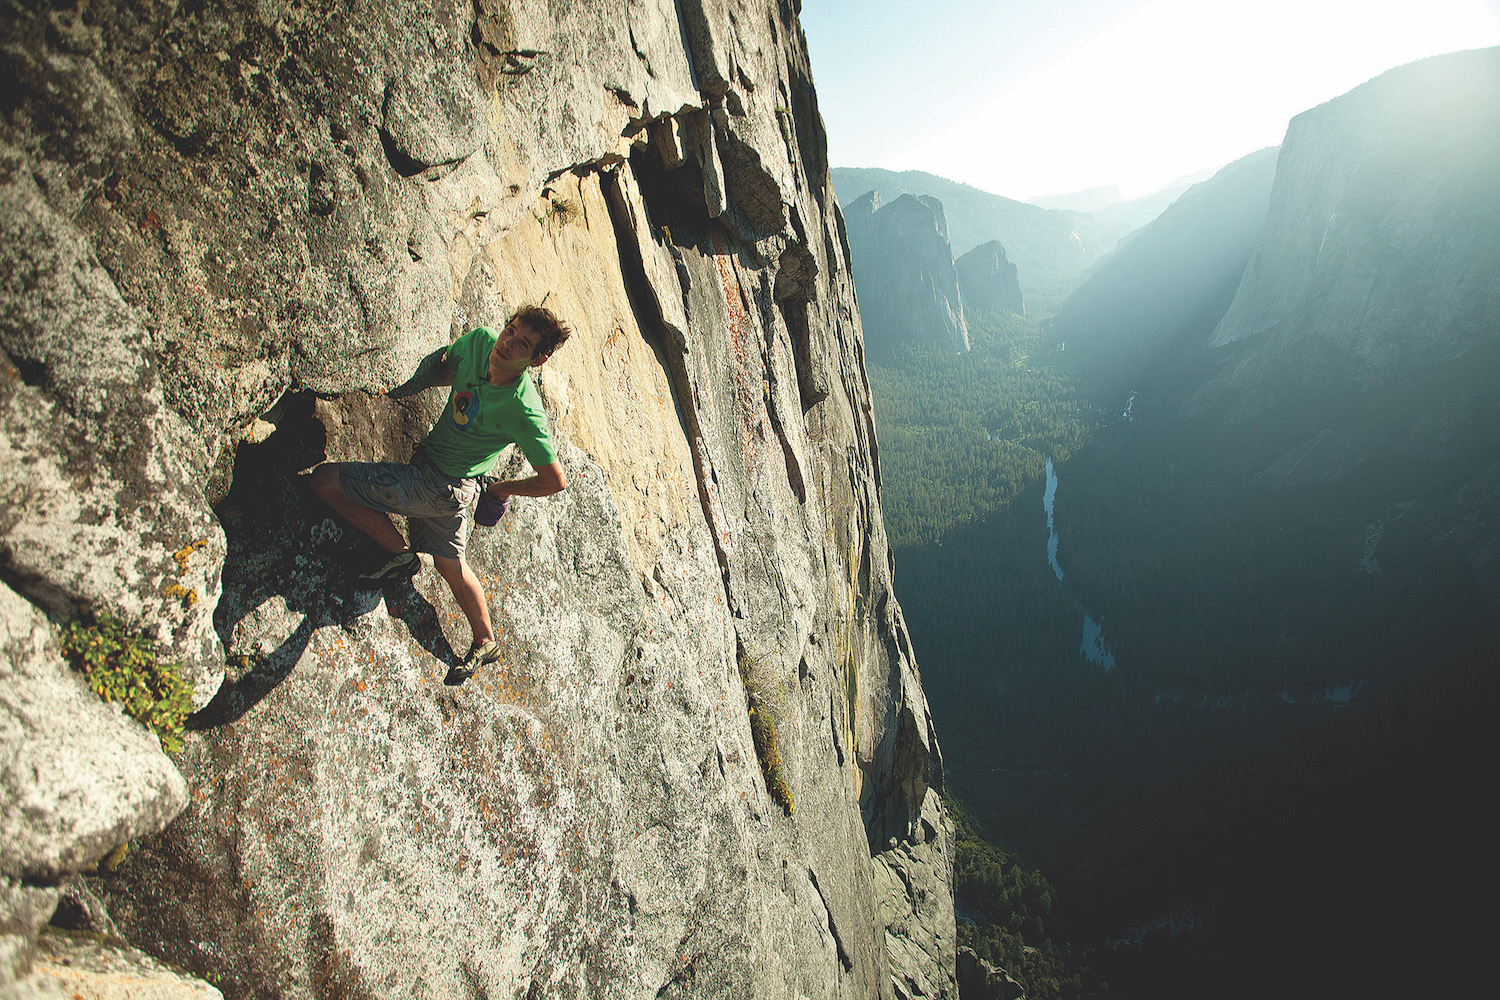 Honnold free soloing on Yosemite's Half Dome in June 2011. (Photo courtesy of Reel Rock)